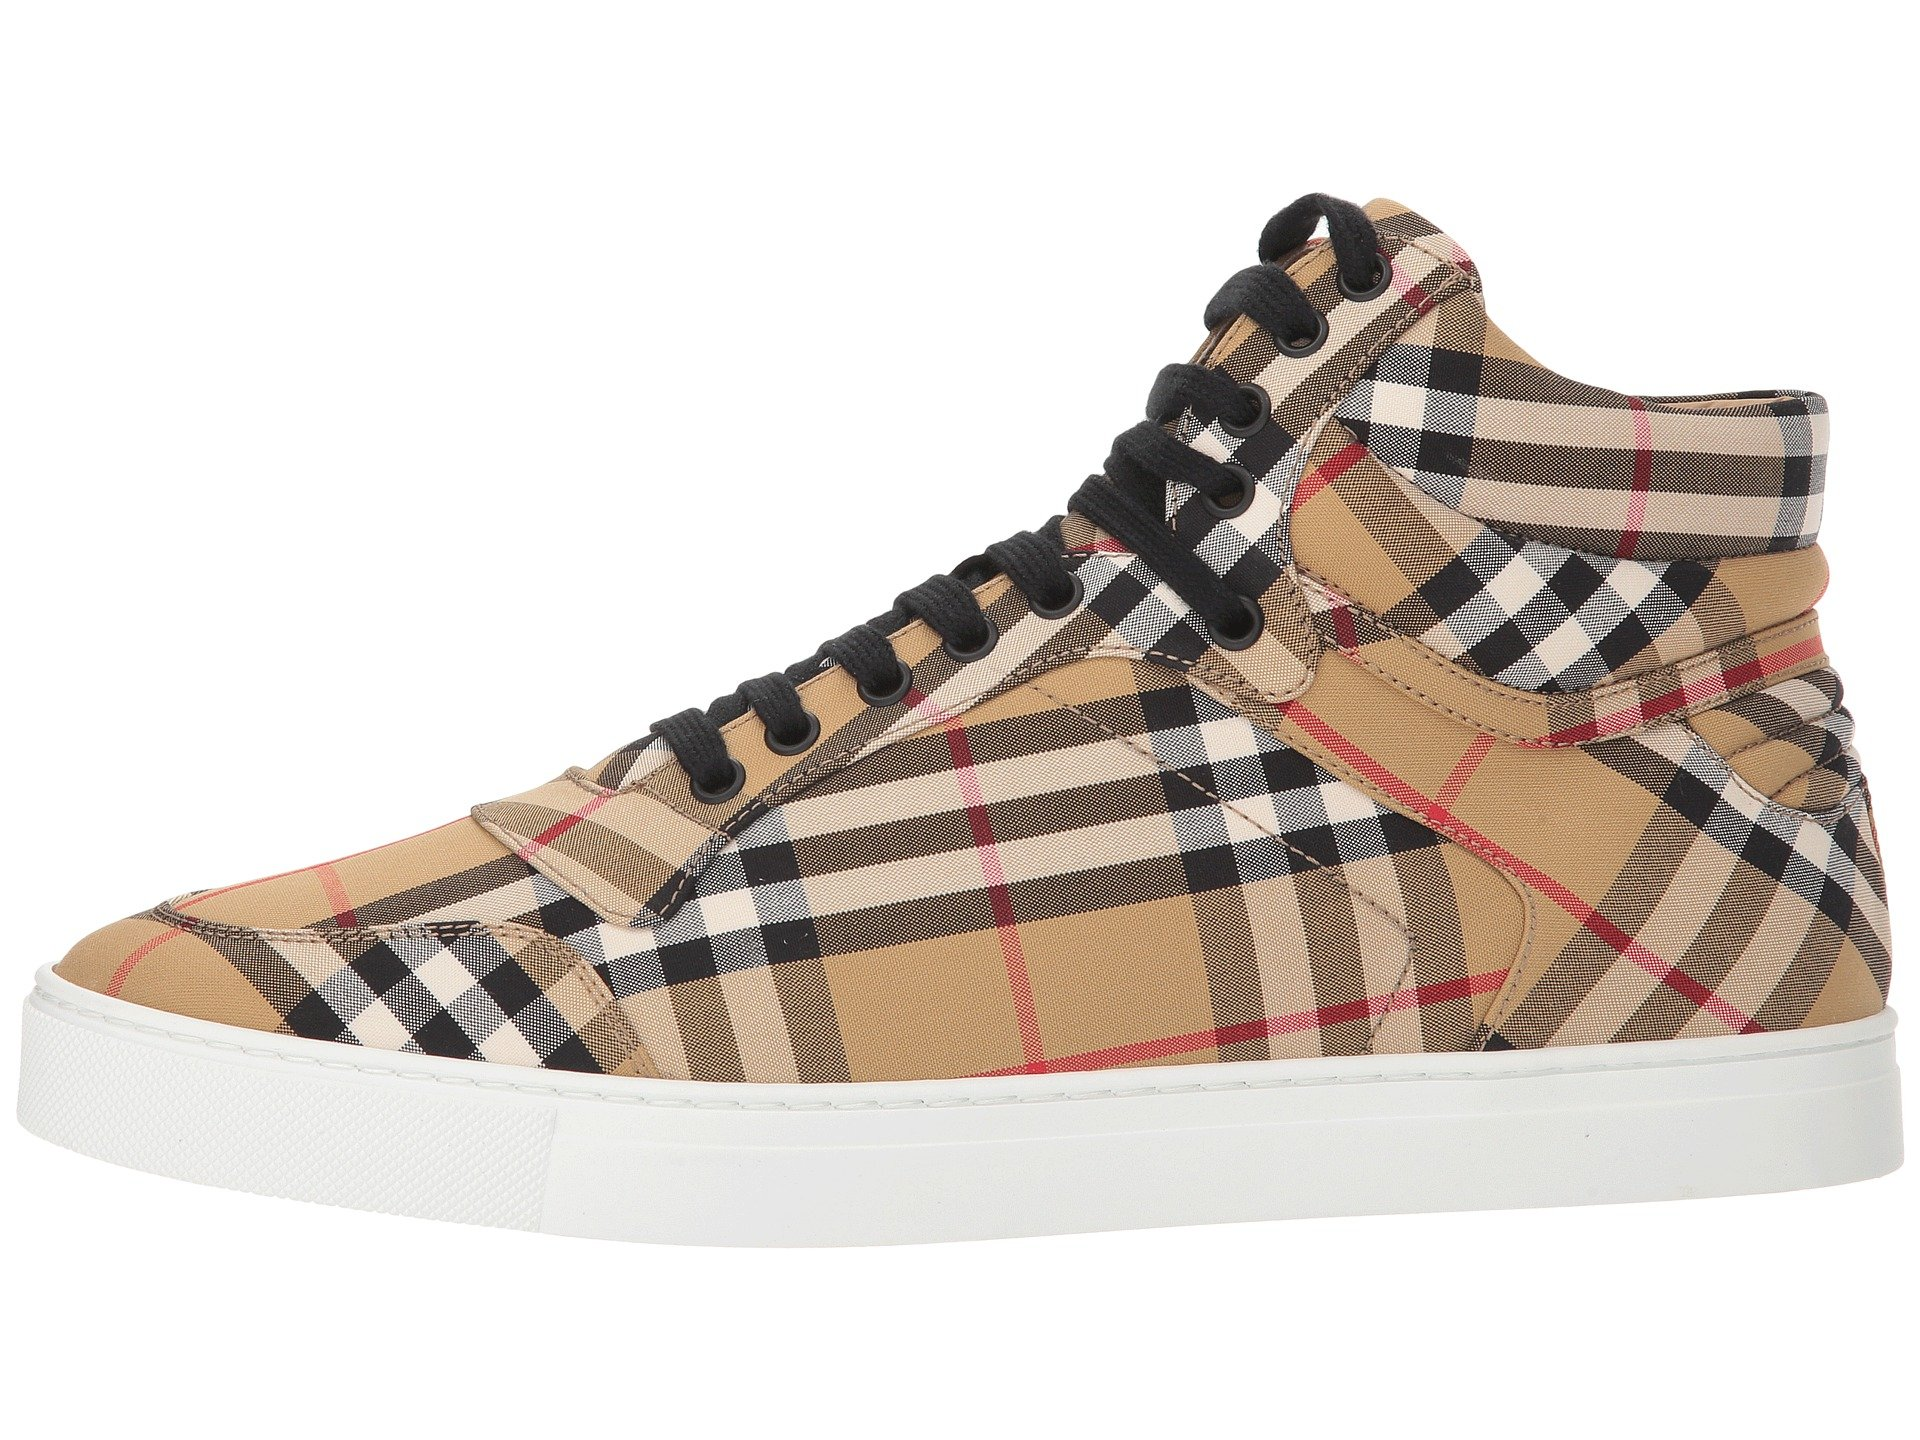 Burberry High Yellow Sneaker Antique Top Reeth RRw4qPa